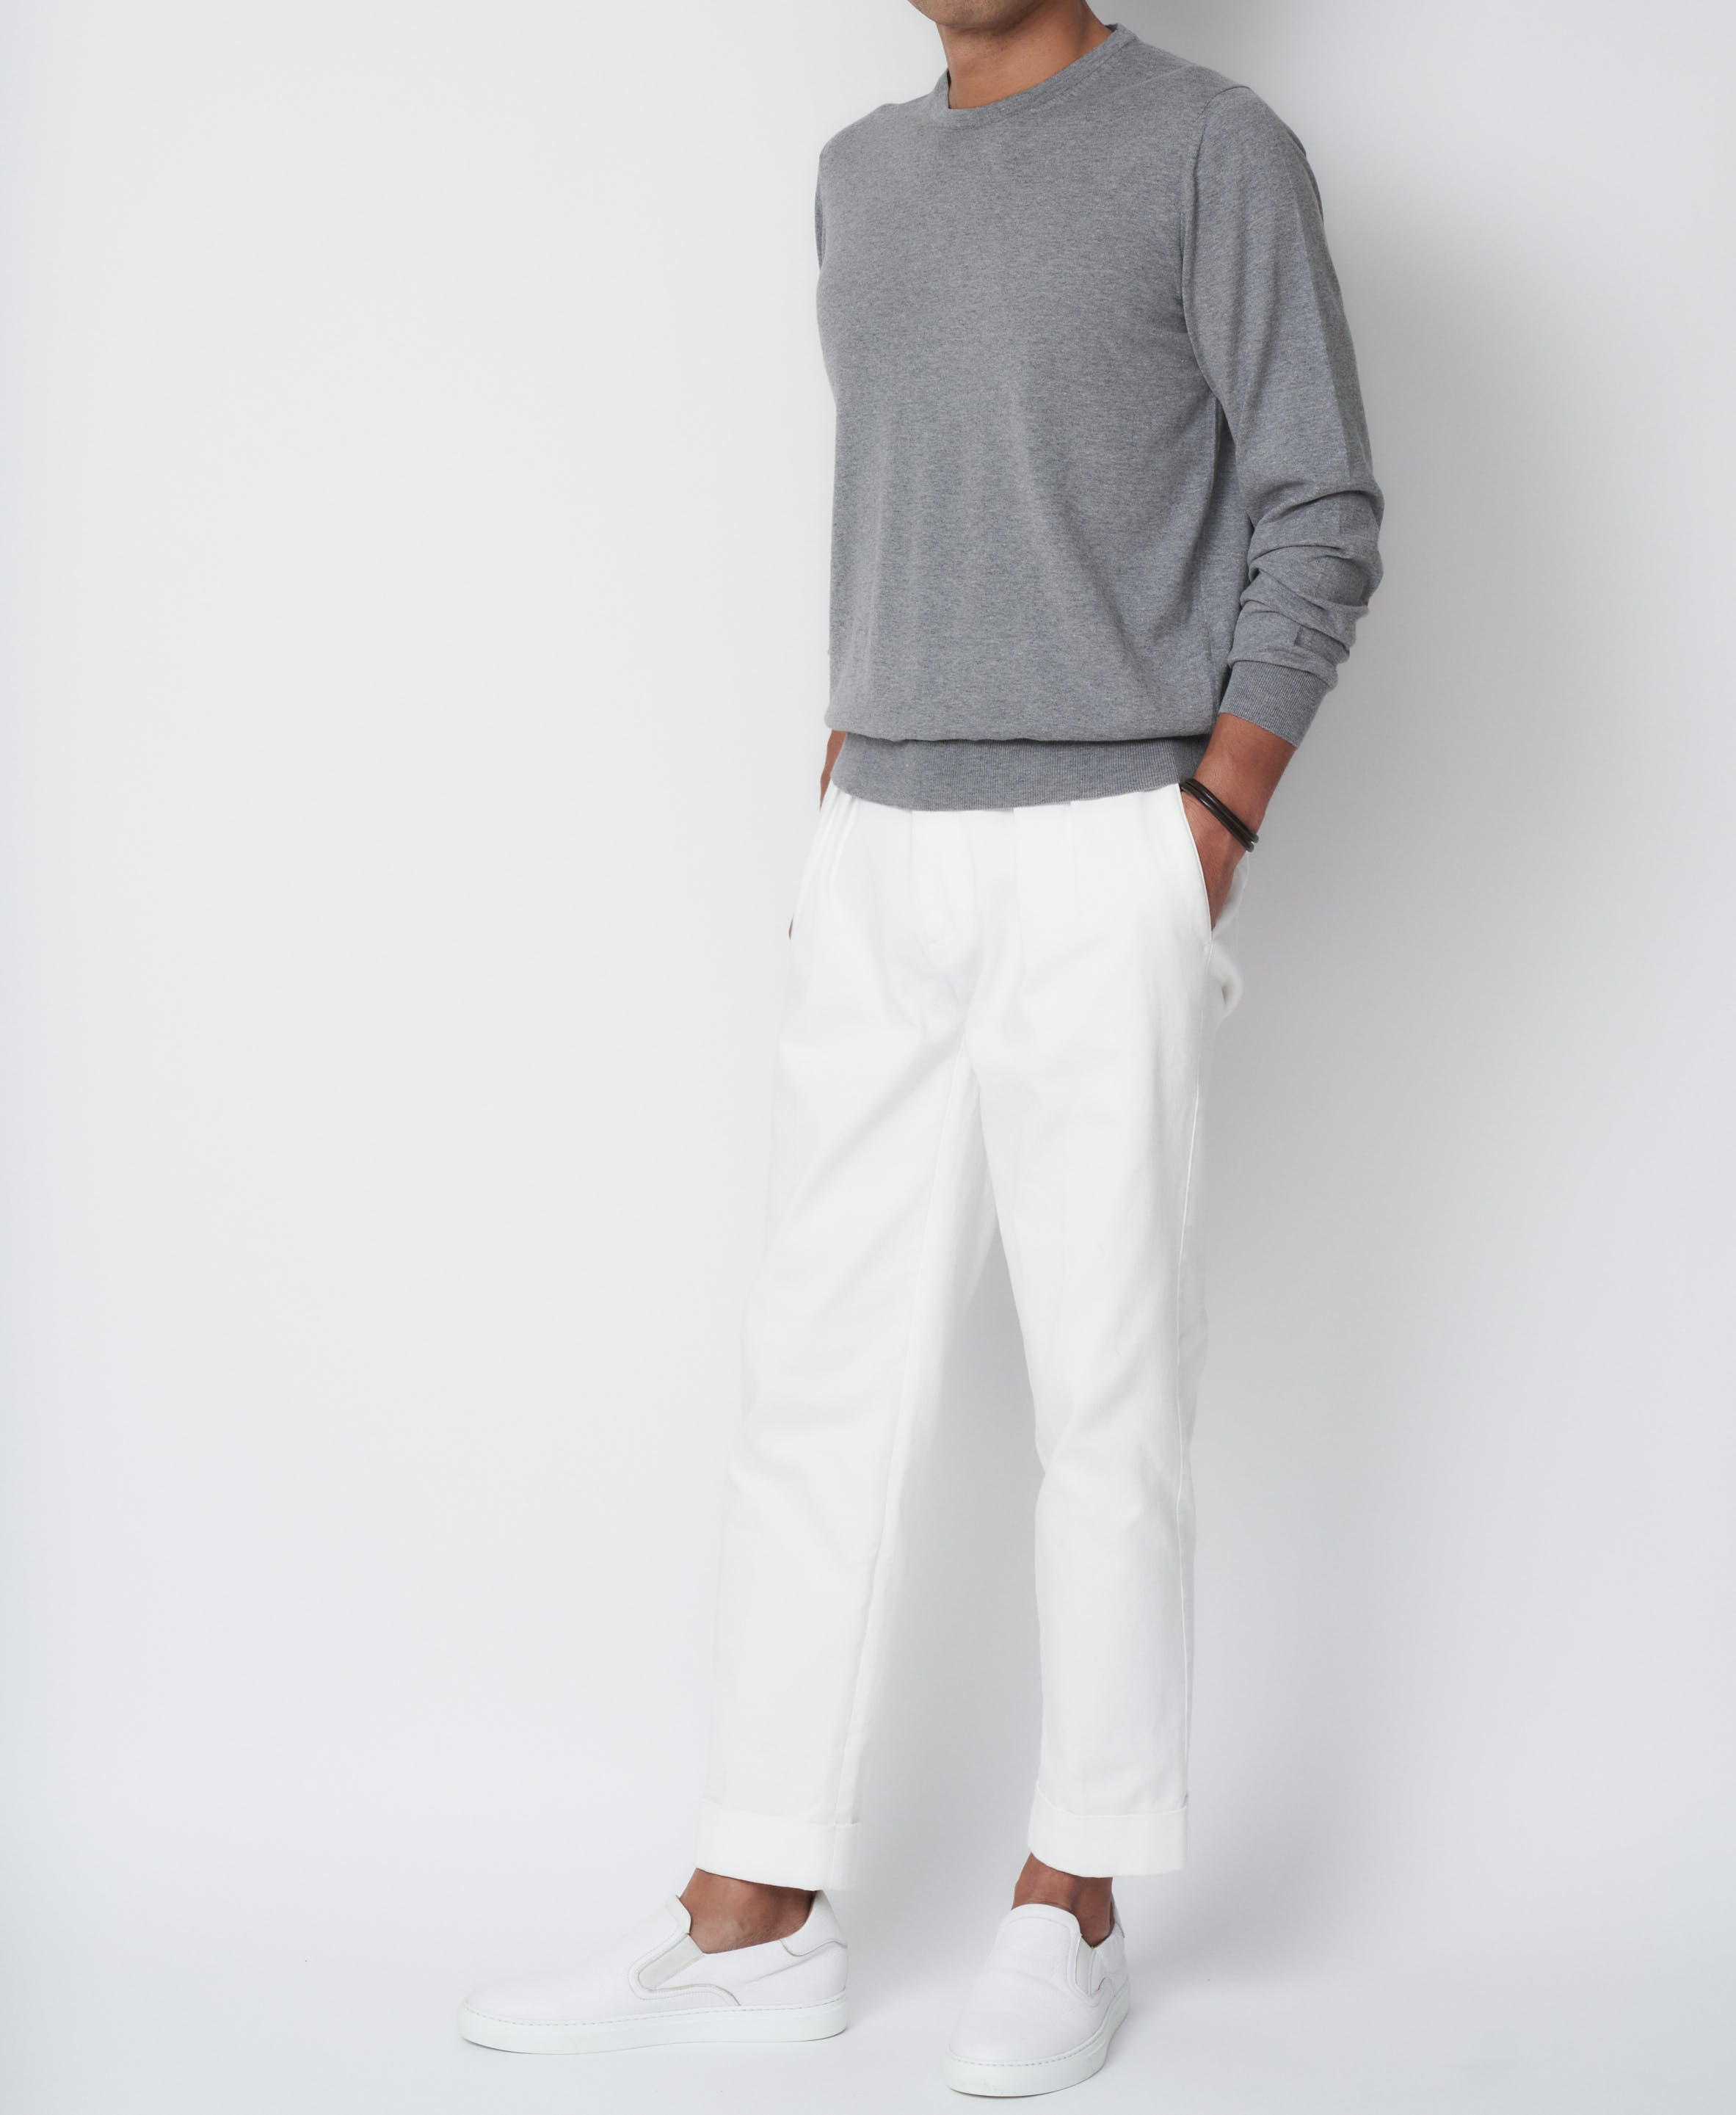 TM-1665 / Supima Cotton Long Sleeve  Knit